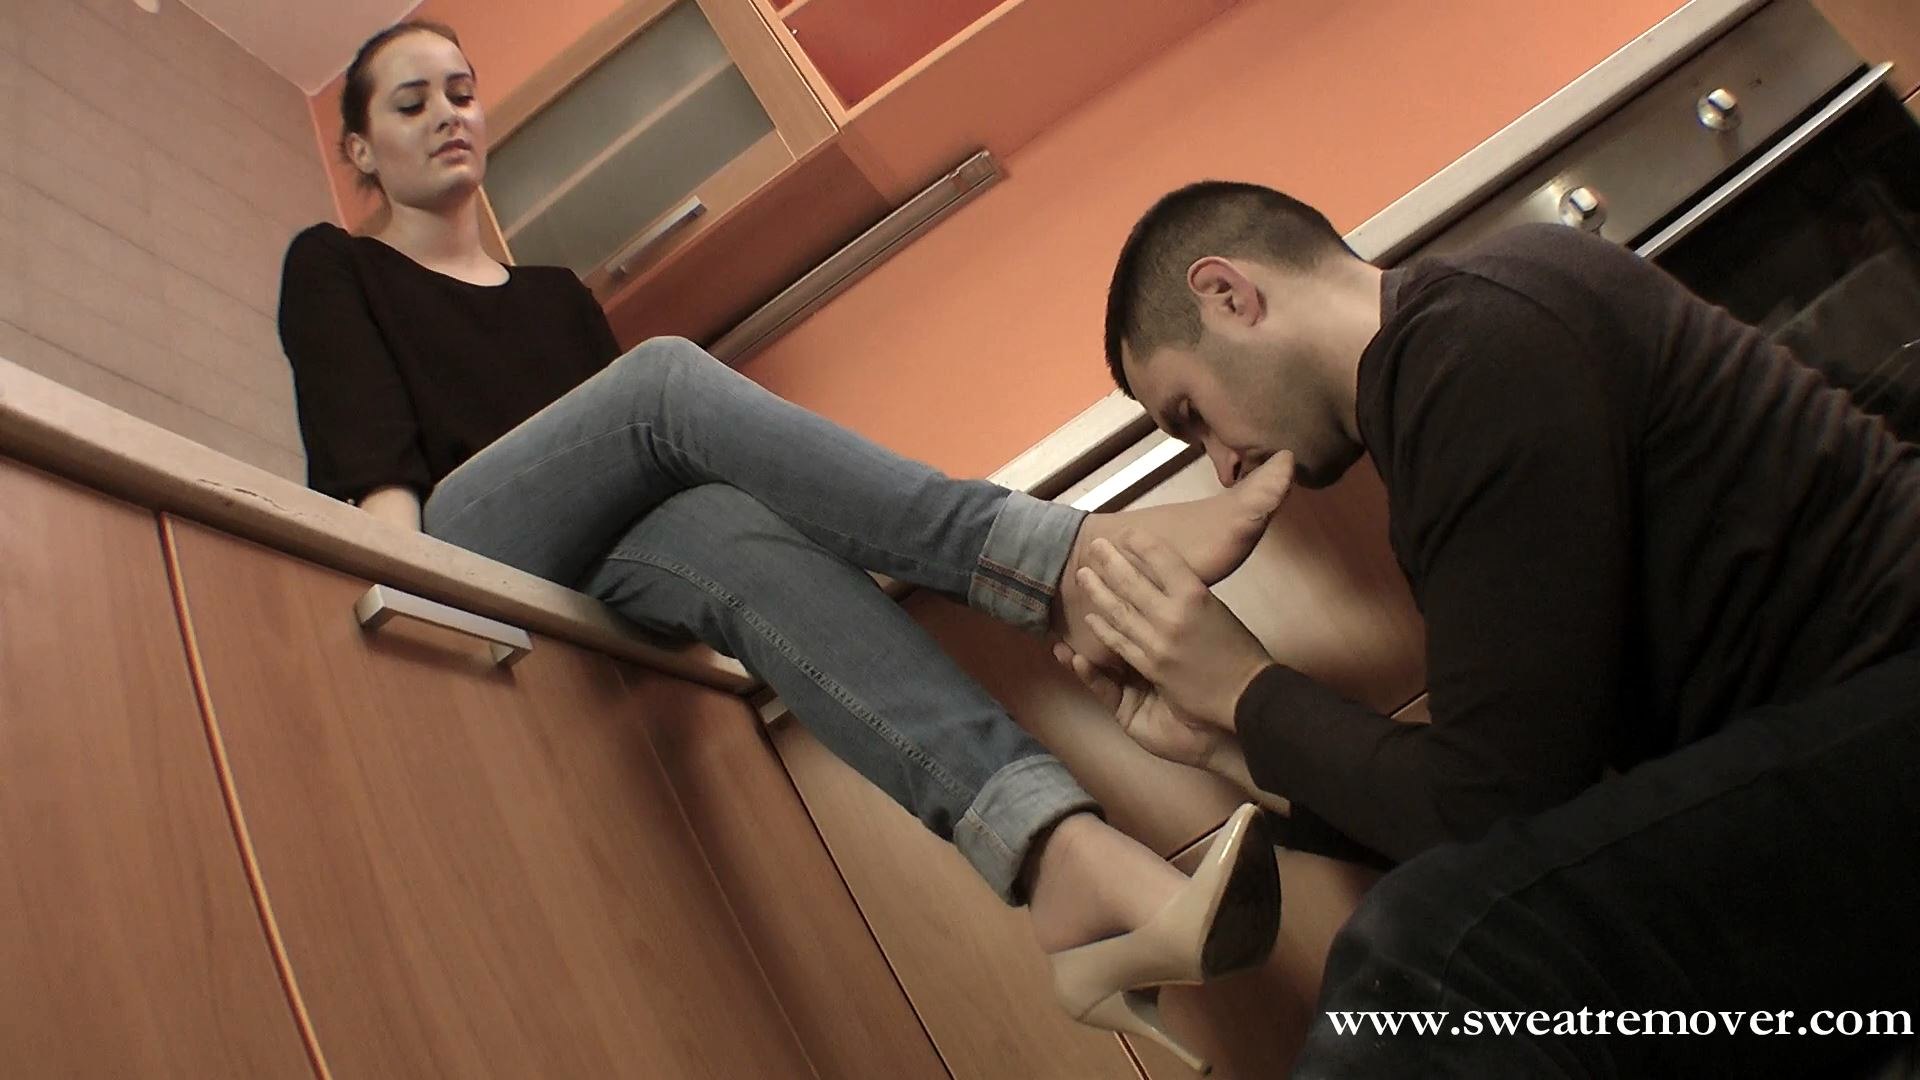 Goddess Victoria In Scene: Pleasant chat with foot licking - SWEATREMOVER - FULL HD/1080p/MP4